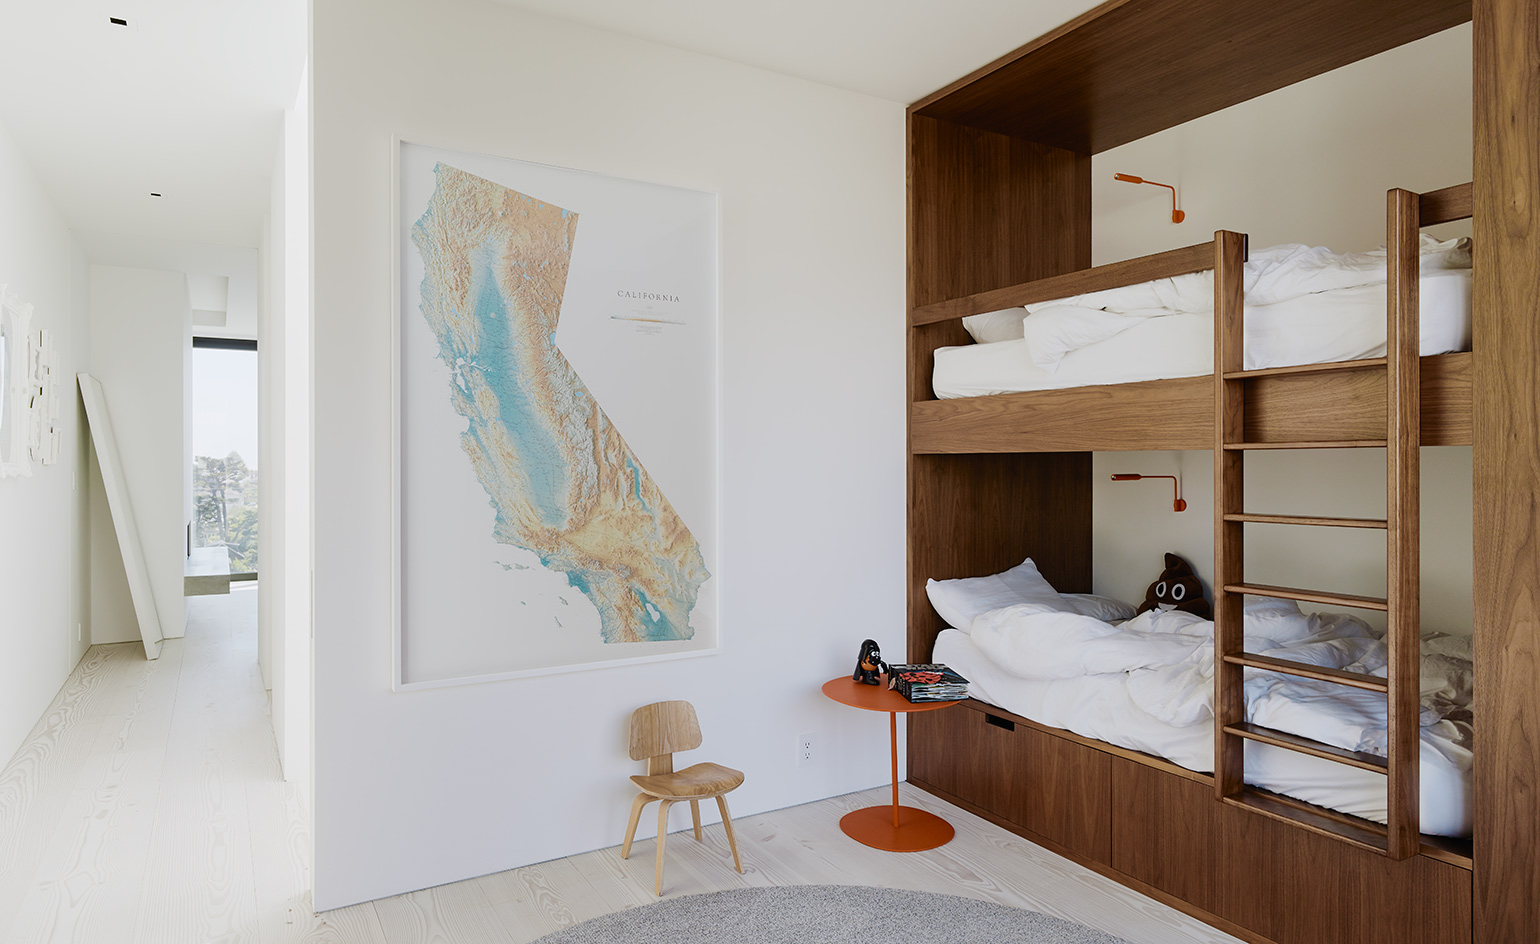 The kids' bedroom has a wooden bunk bed, a map on the wall and some small accessories